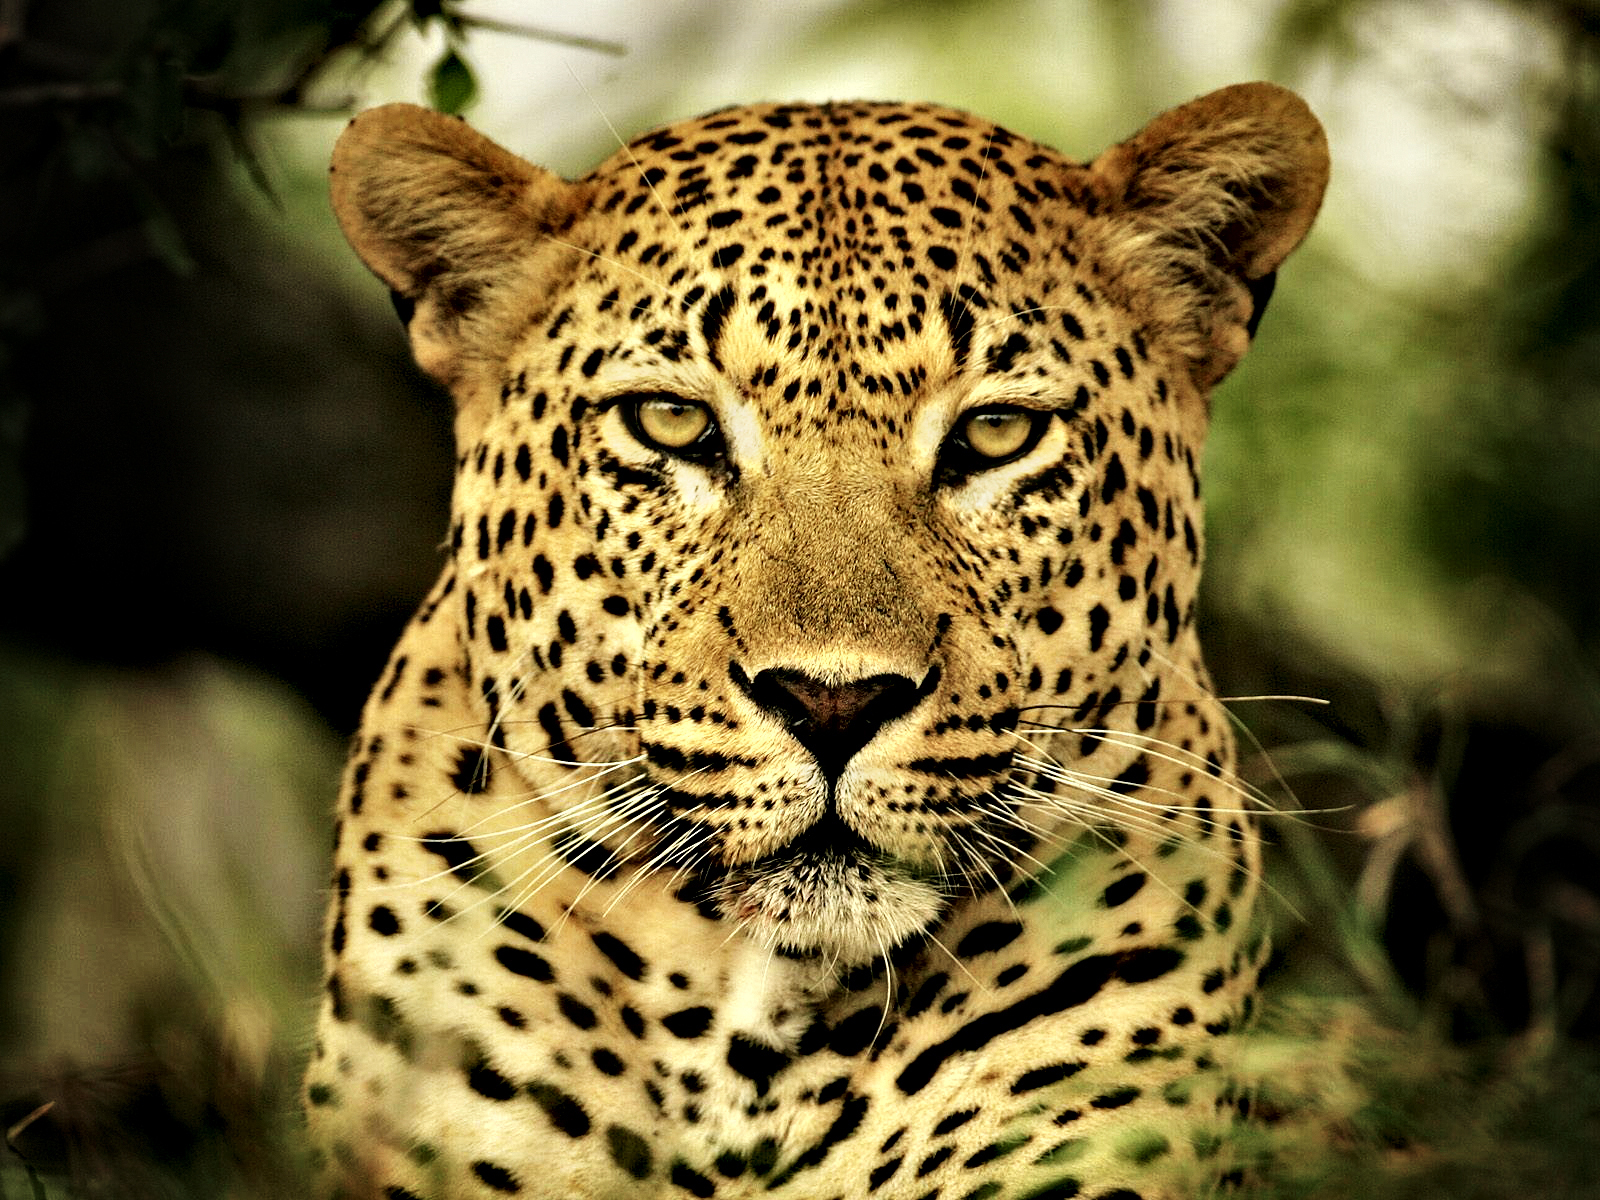 Leopard Calm Look 653.55 Kb